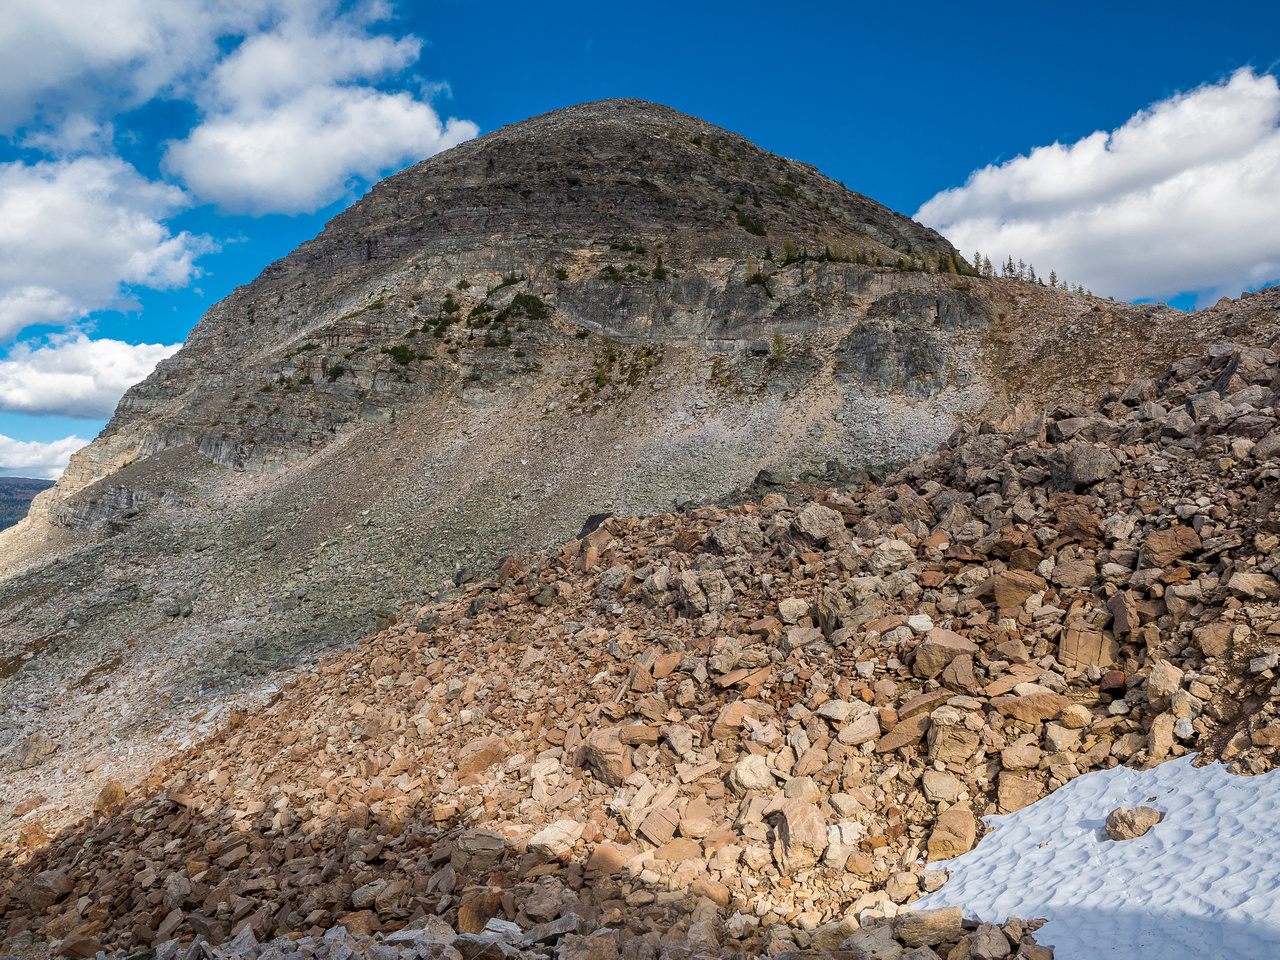 Looking back up at Sugarloaf as we traverse to the Mummy Lake trail.